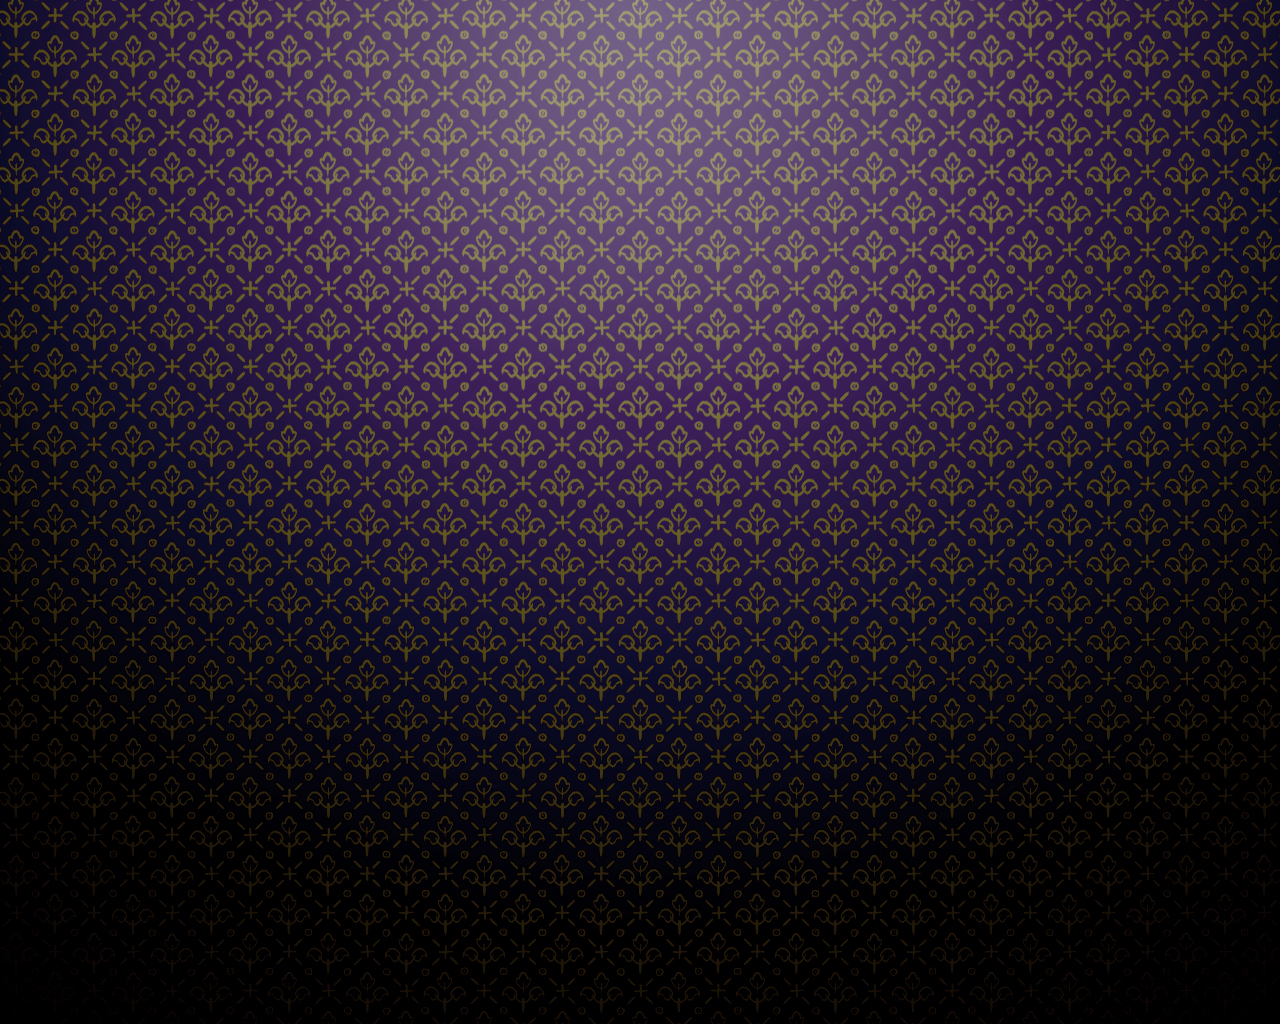 Expensive Texture Purple Gold